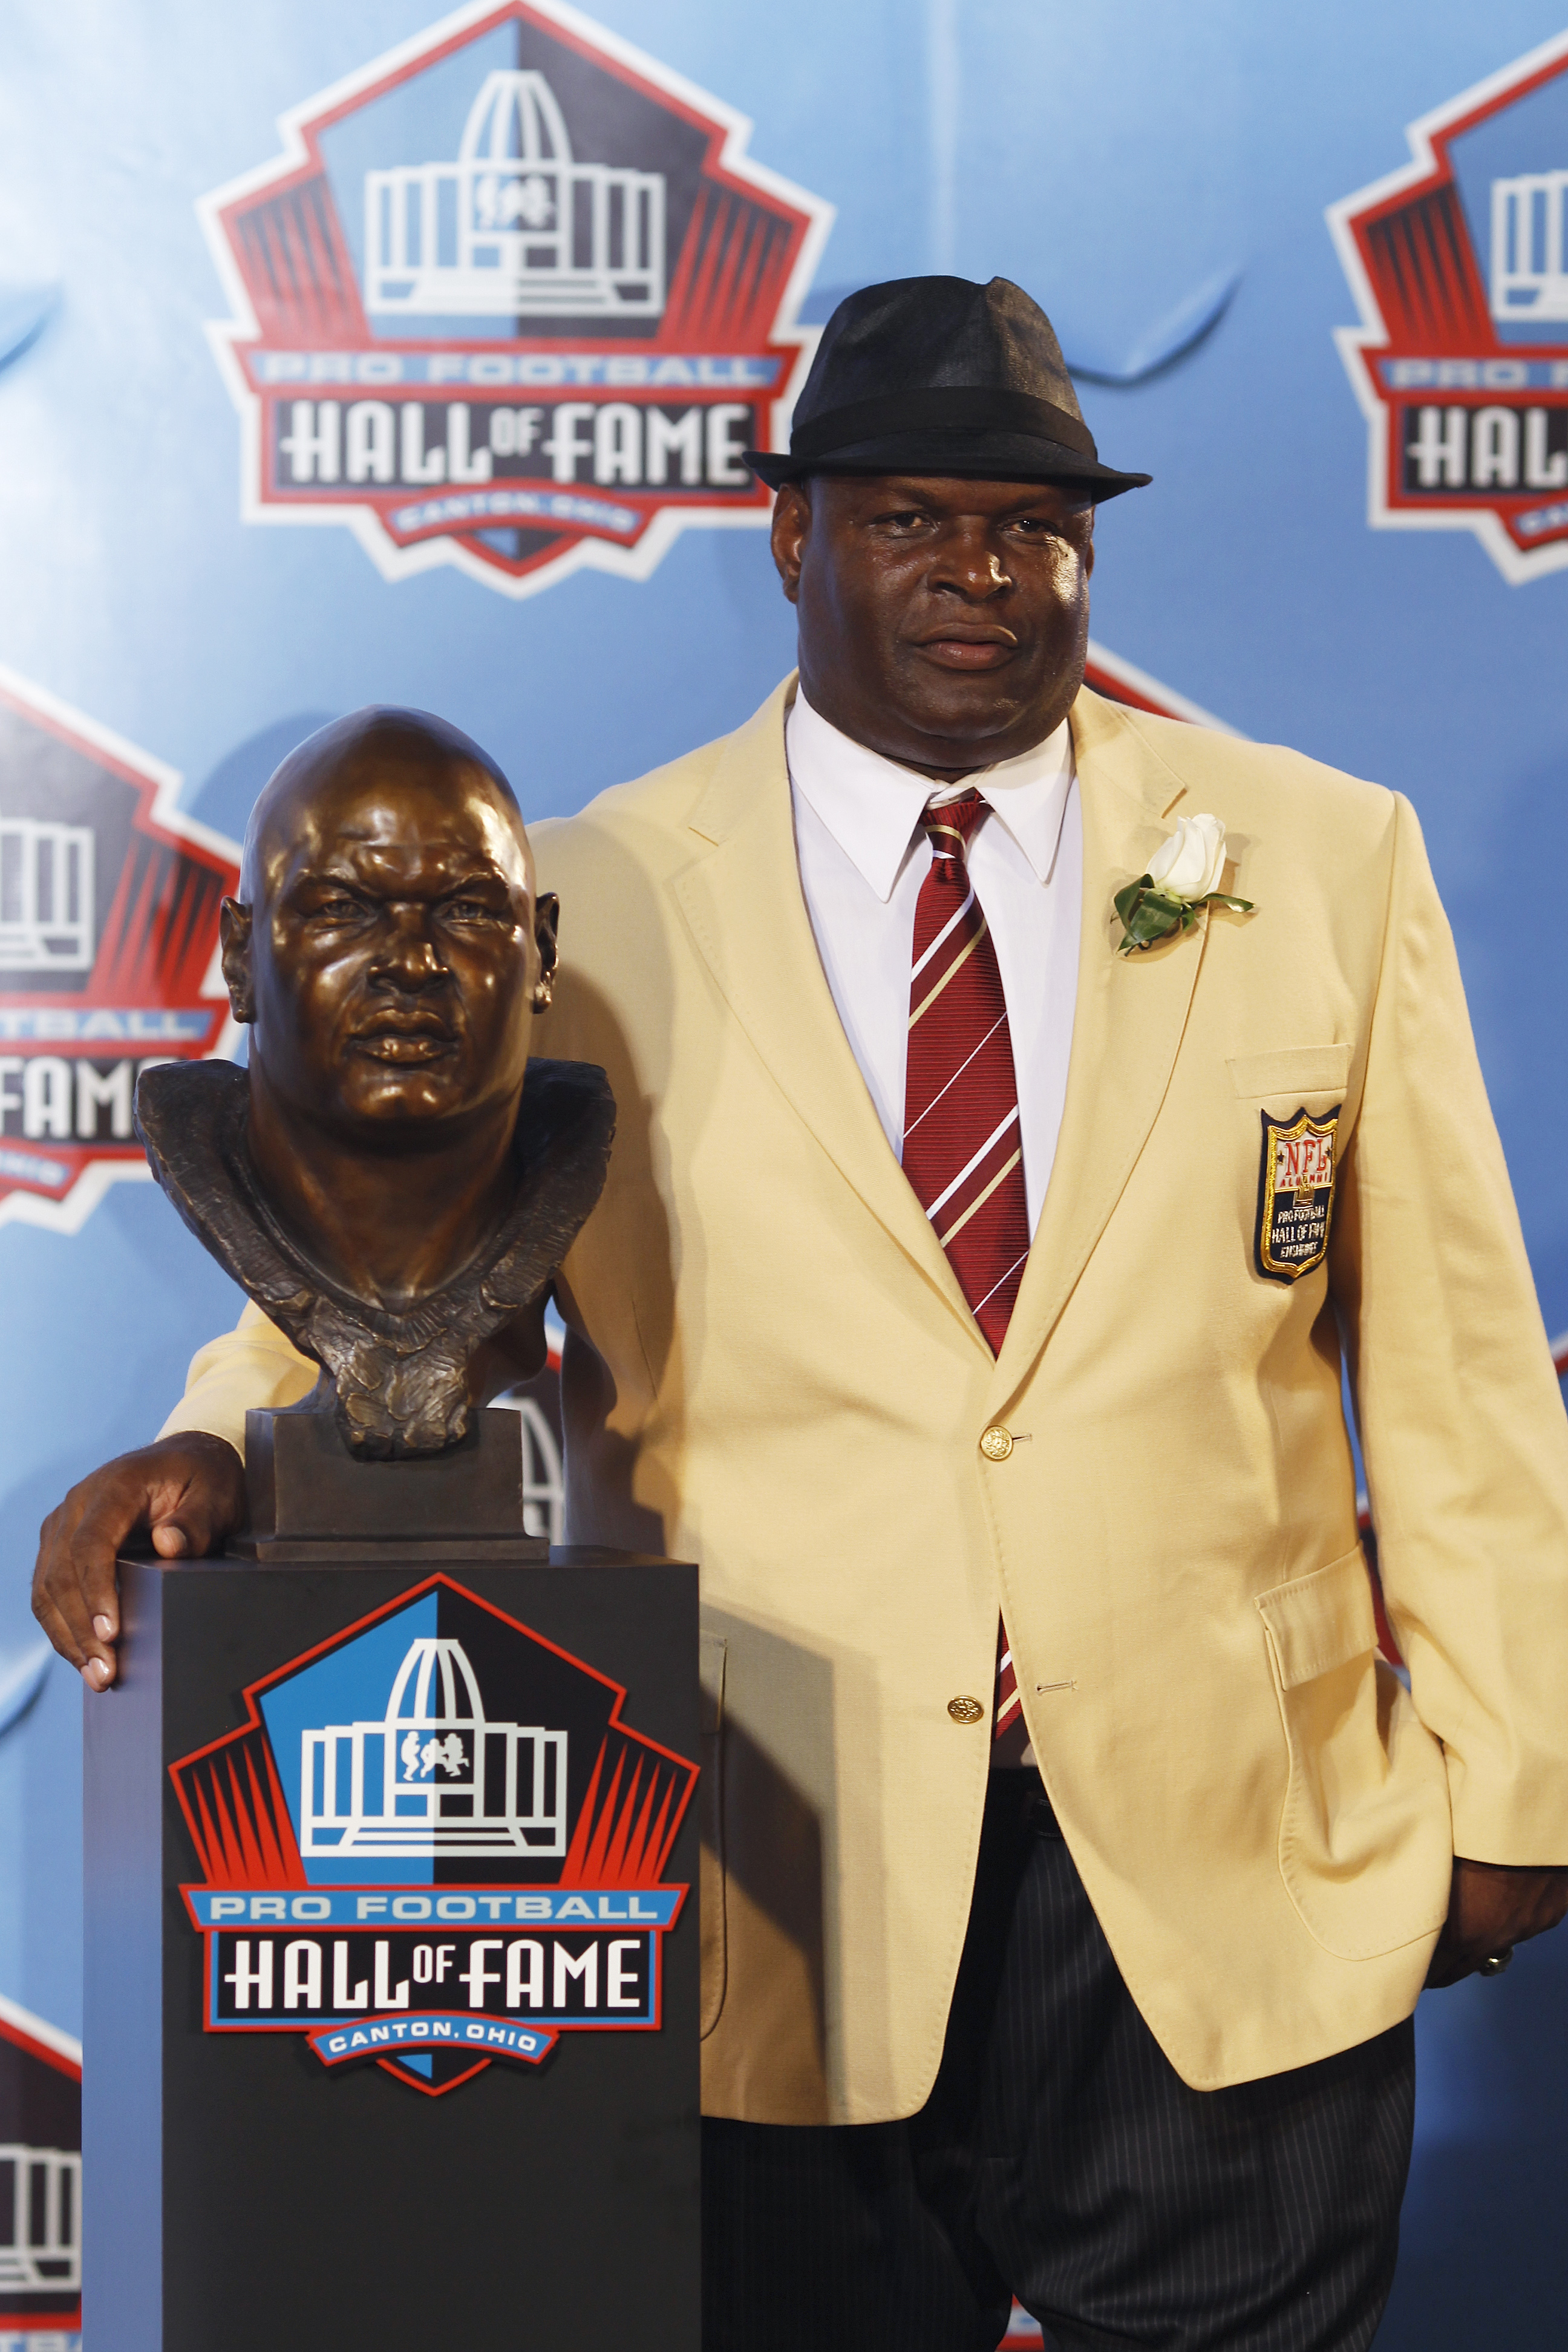 CANTON, OH - AUGUST 7: Rickey Jackson poses with his bust during the 2010 Pro Football Hall of Fame Enshrinement Ceremony at the Pro Football Hall of Fame Field at Fawcett Stadium on August 7, 2010 in Canton, Ohio. (Photo by Joe Robbins/Getty Images)